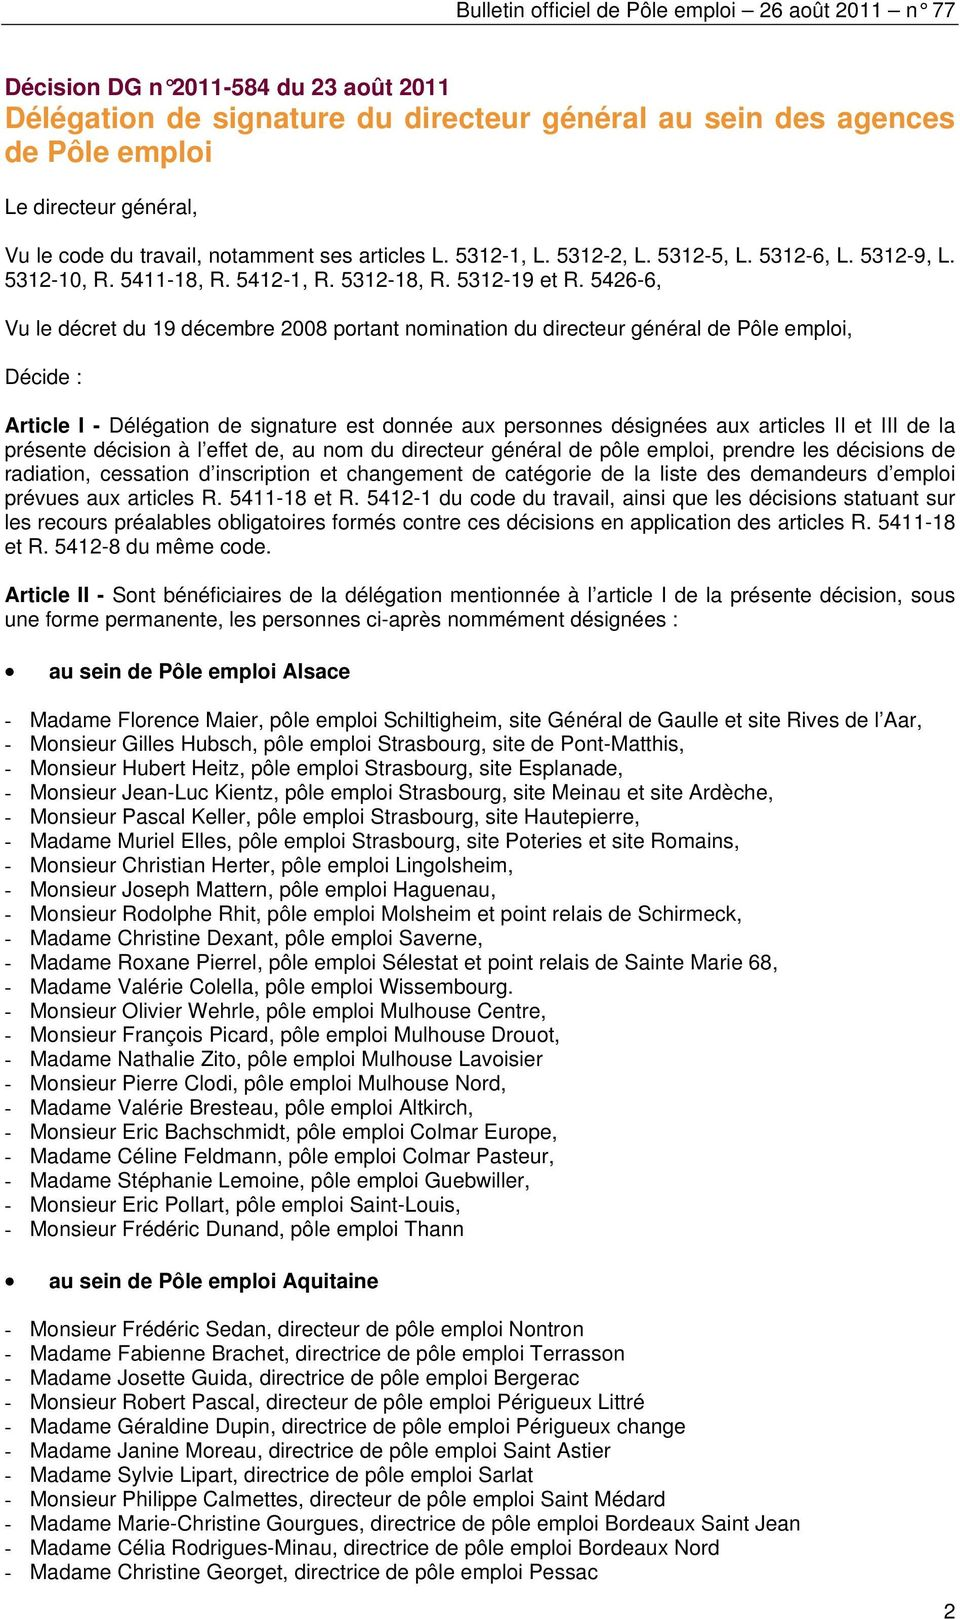 bulletin officiel de pole emploi pdf. Black Bedroom Furniture Sets. Home Design Ideas